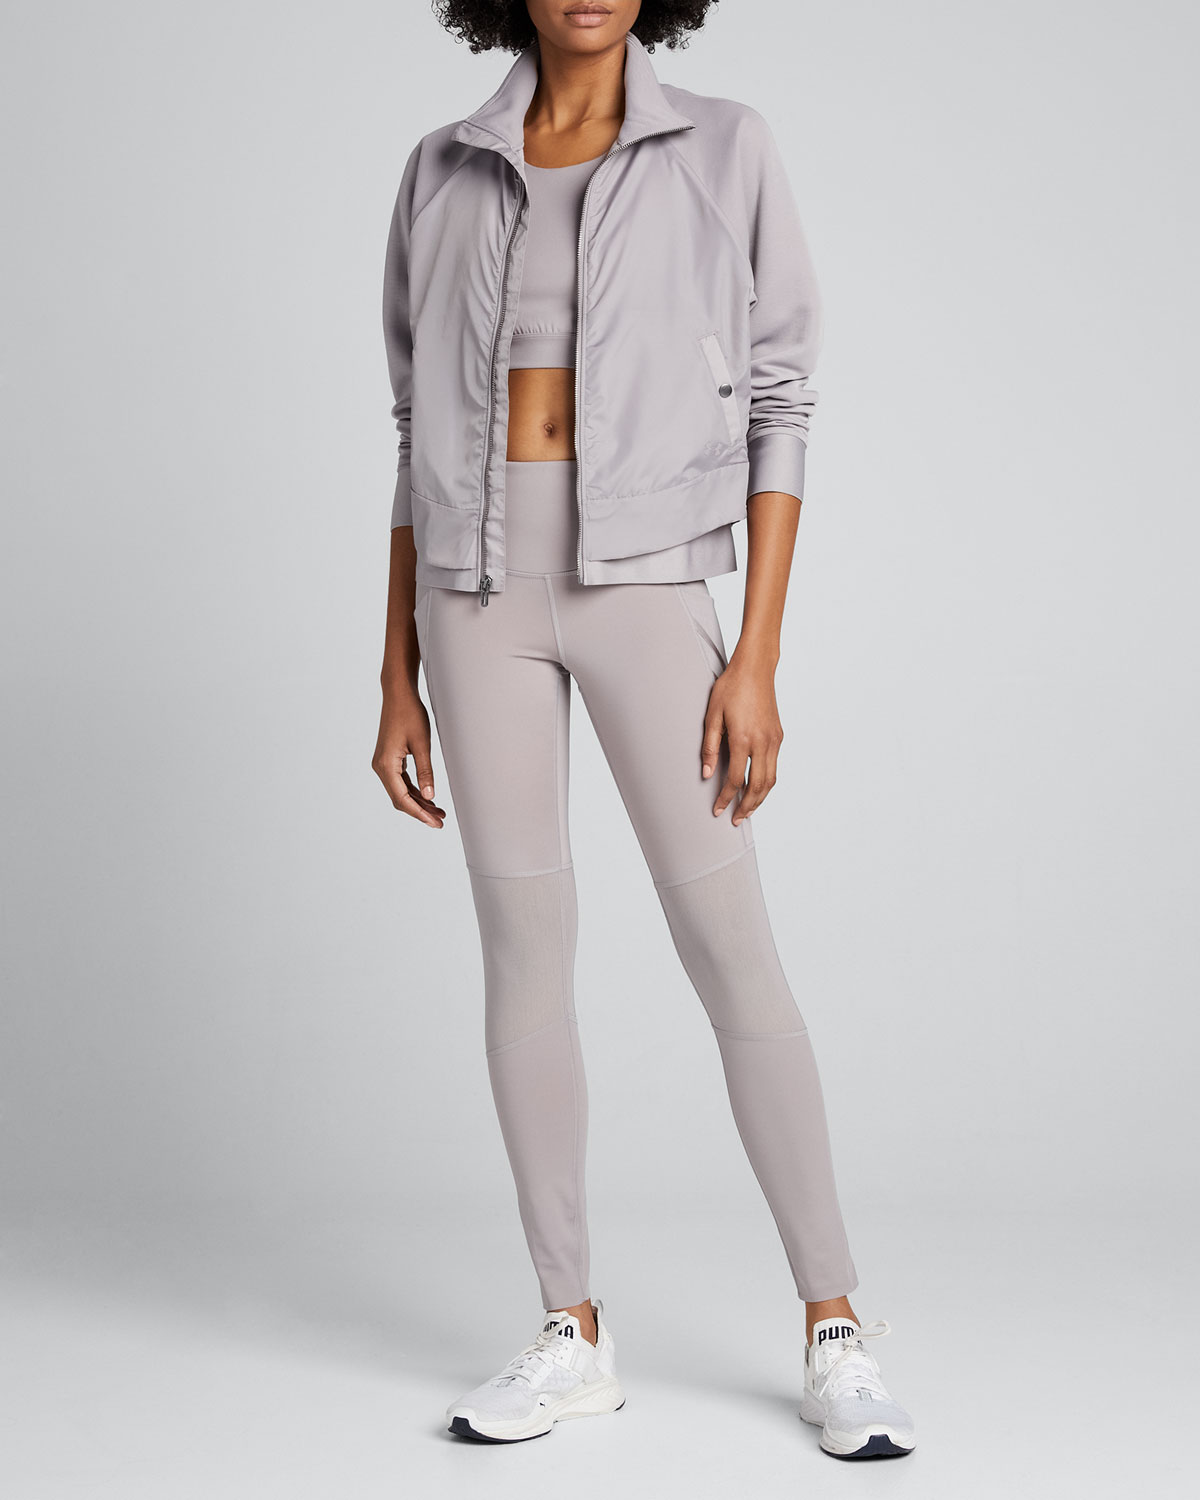 Under Armour Jackets X MISTY COPELAND LAYERED ZIP-FRONT JACKET